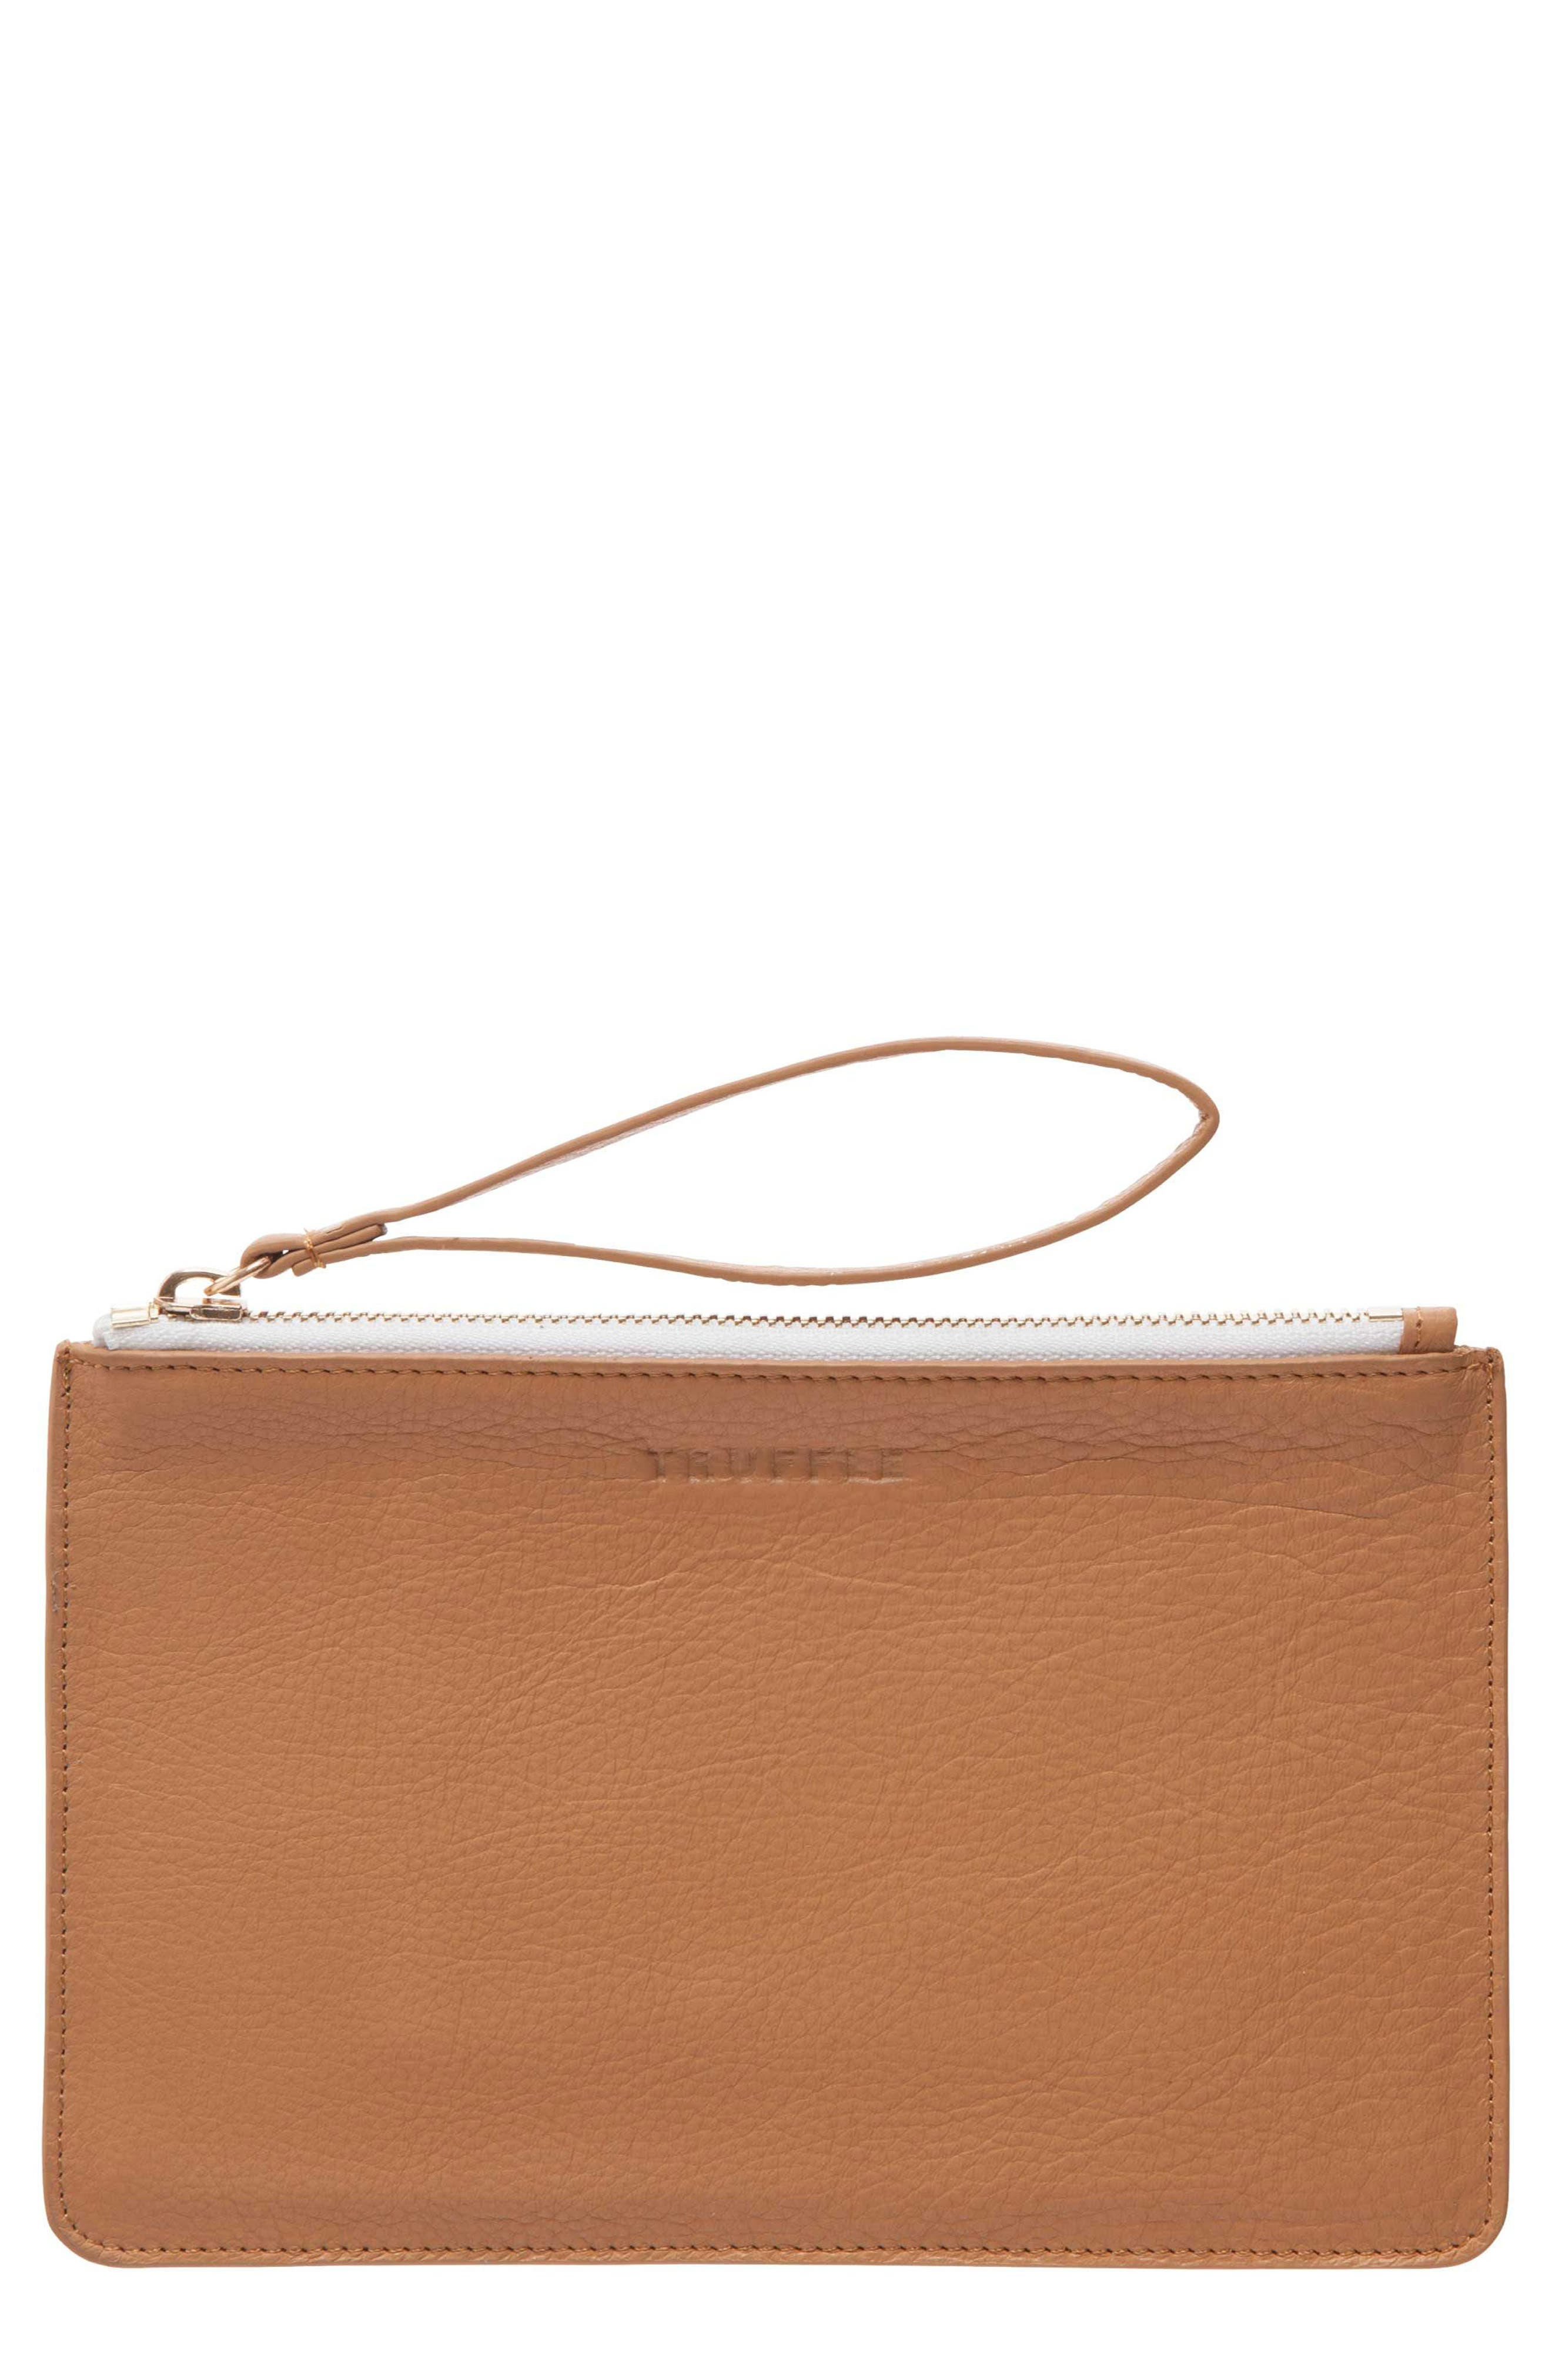 Privacy Leather Wristlet,                             Main thumbnail 1, color,                             Caramel